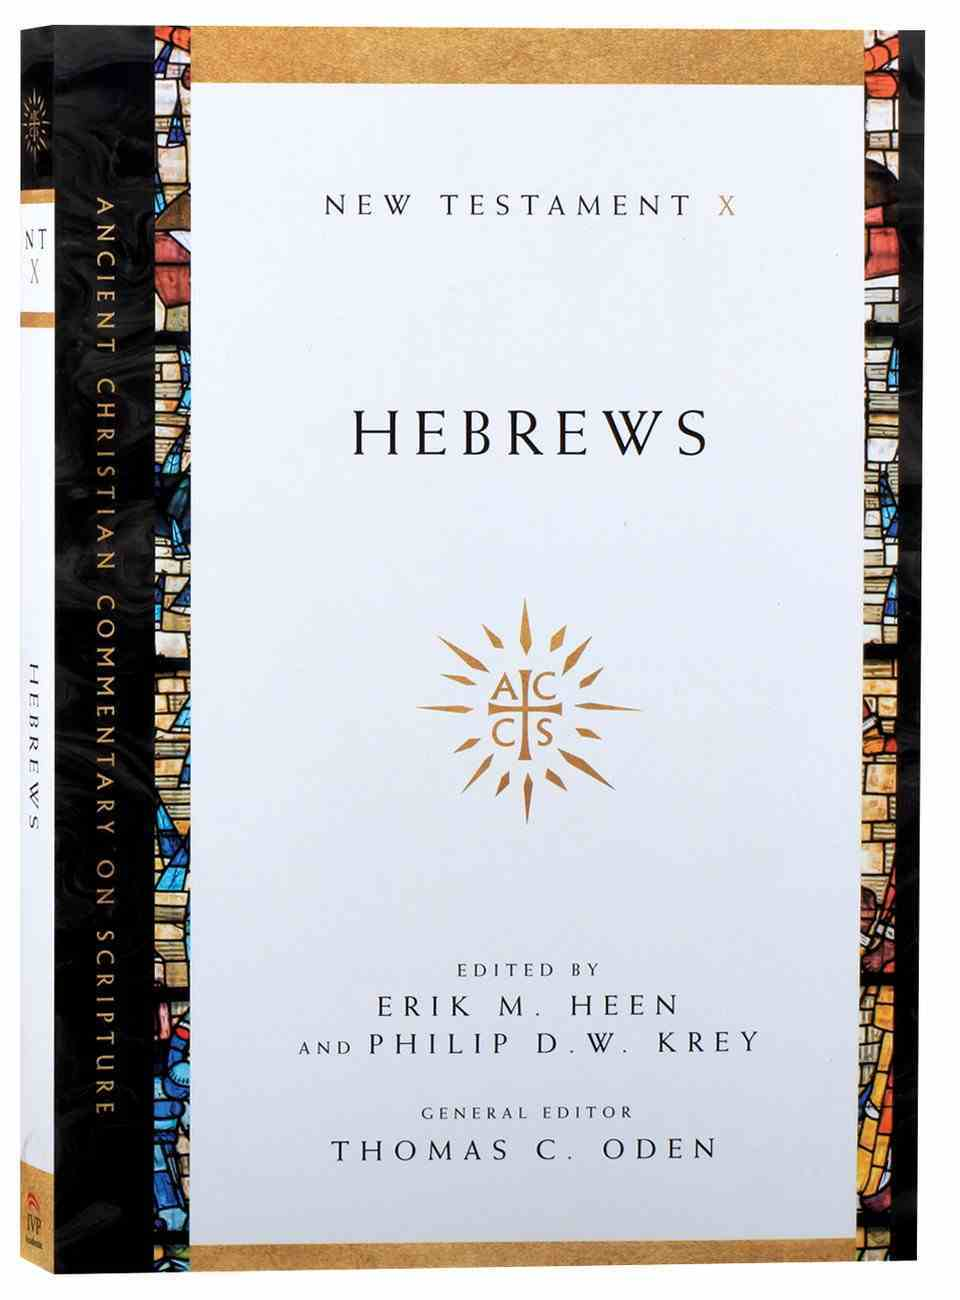 Accs NT: Hebrews (Ancient Christian Commentary On Scripture: New Testament Series) Paperback